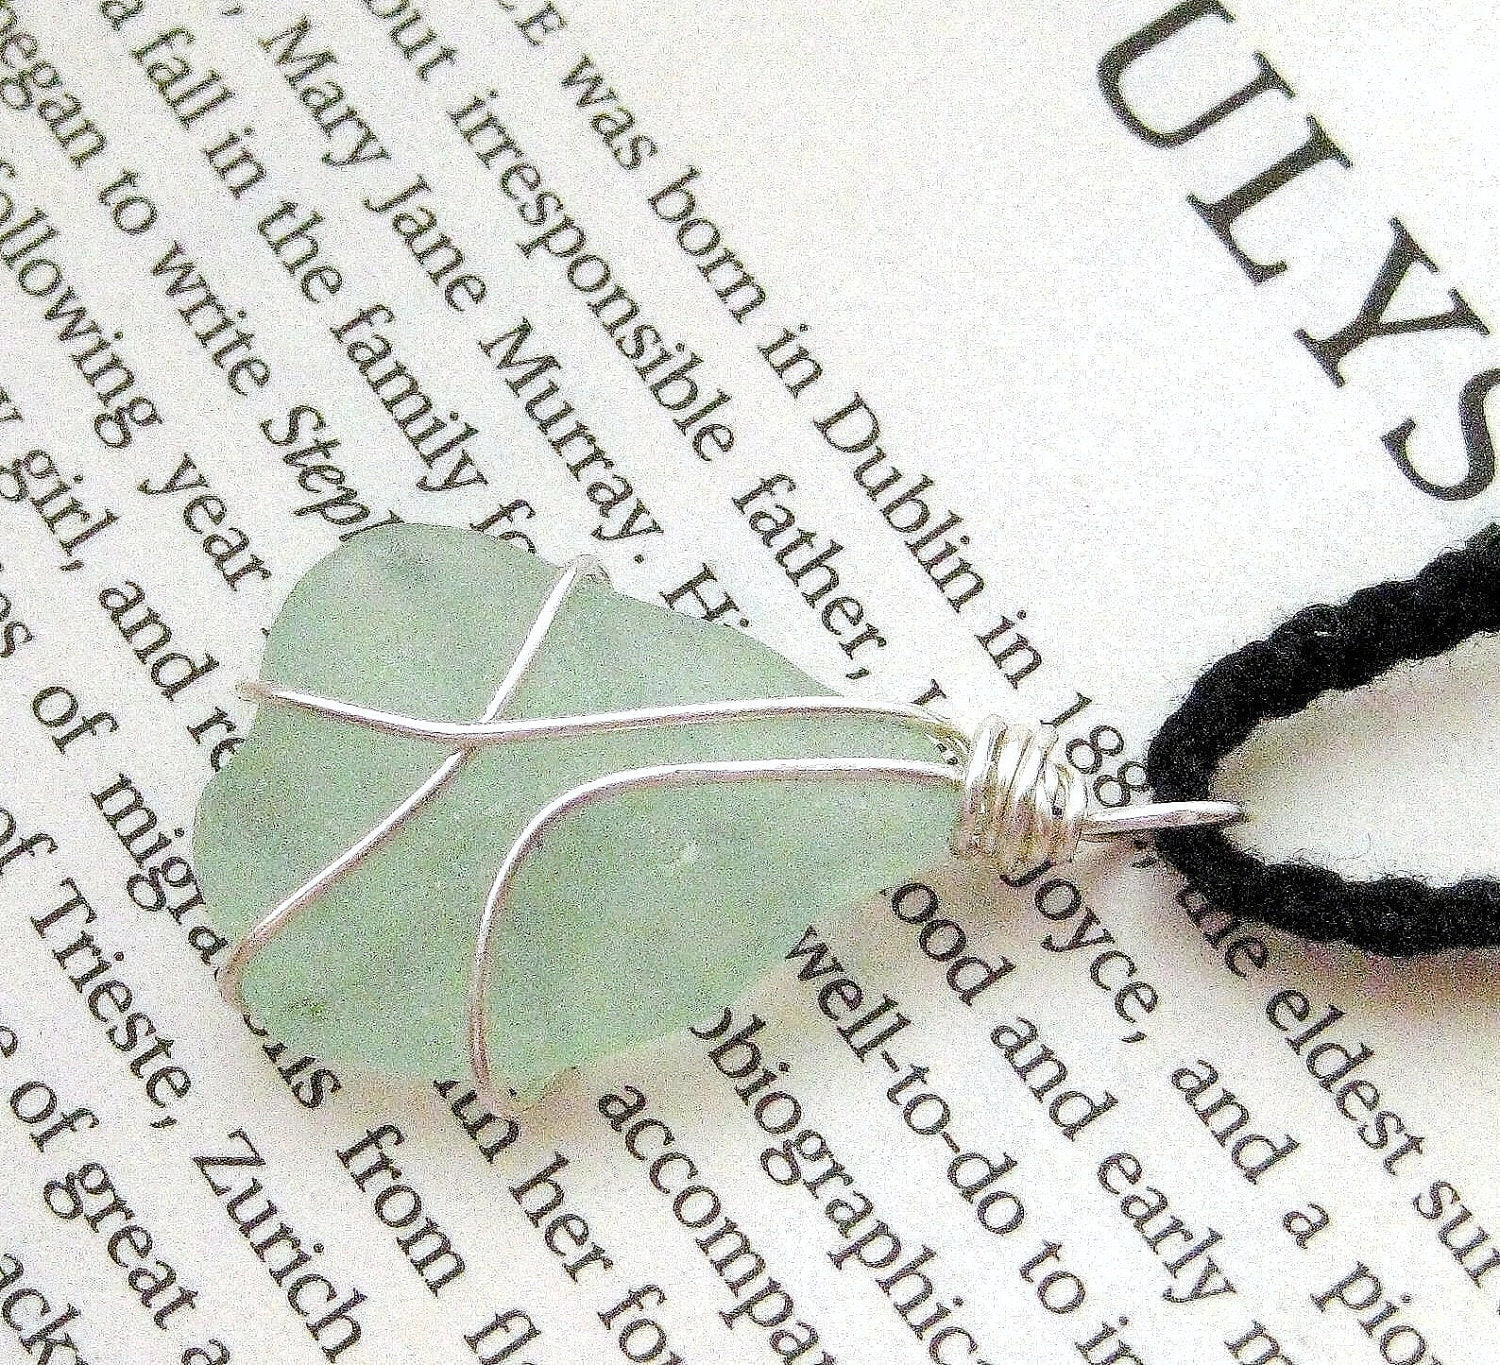 Seaglass Pendant Handmade in Ireland.  Pale Aqua Seafoam Beach Glass. Still Waters